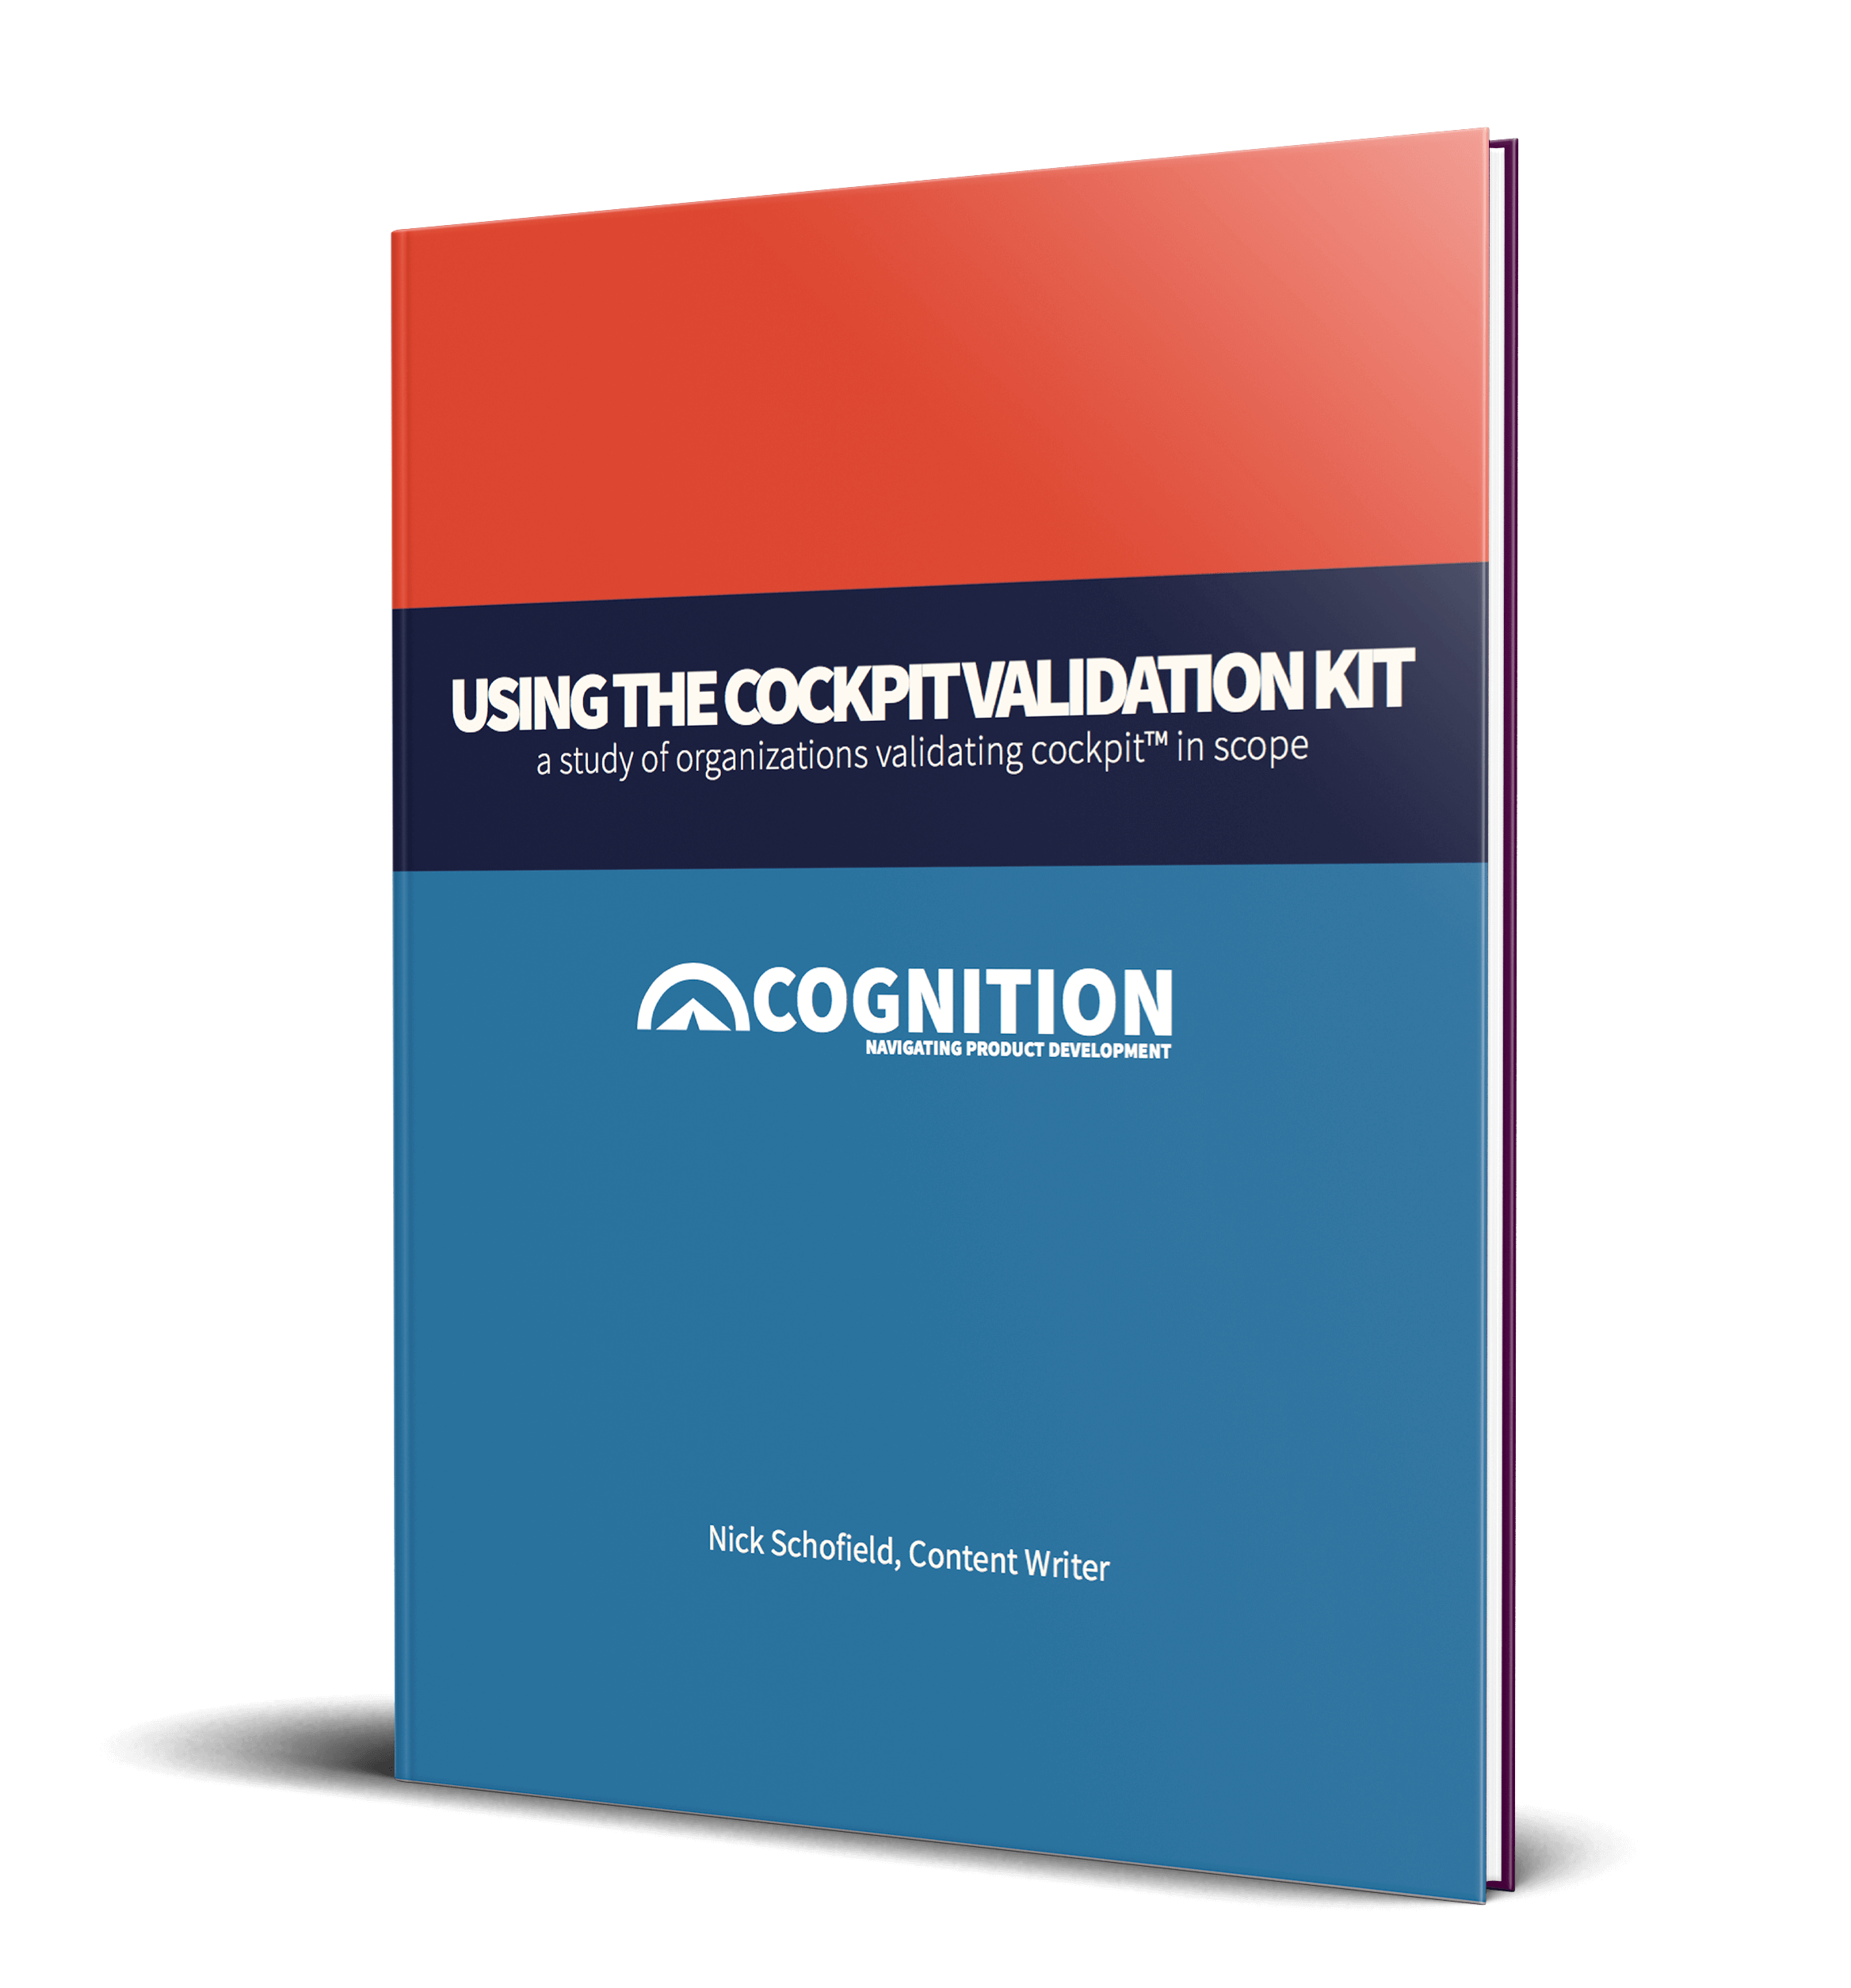 Cognition Corporation: Validation Kit Case Study